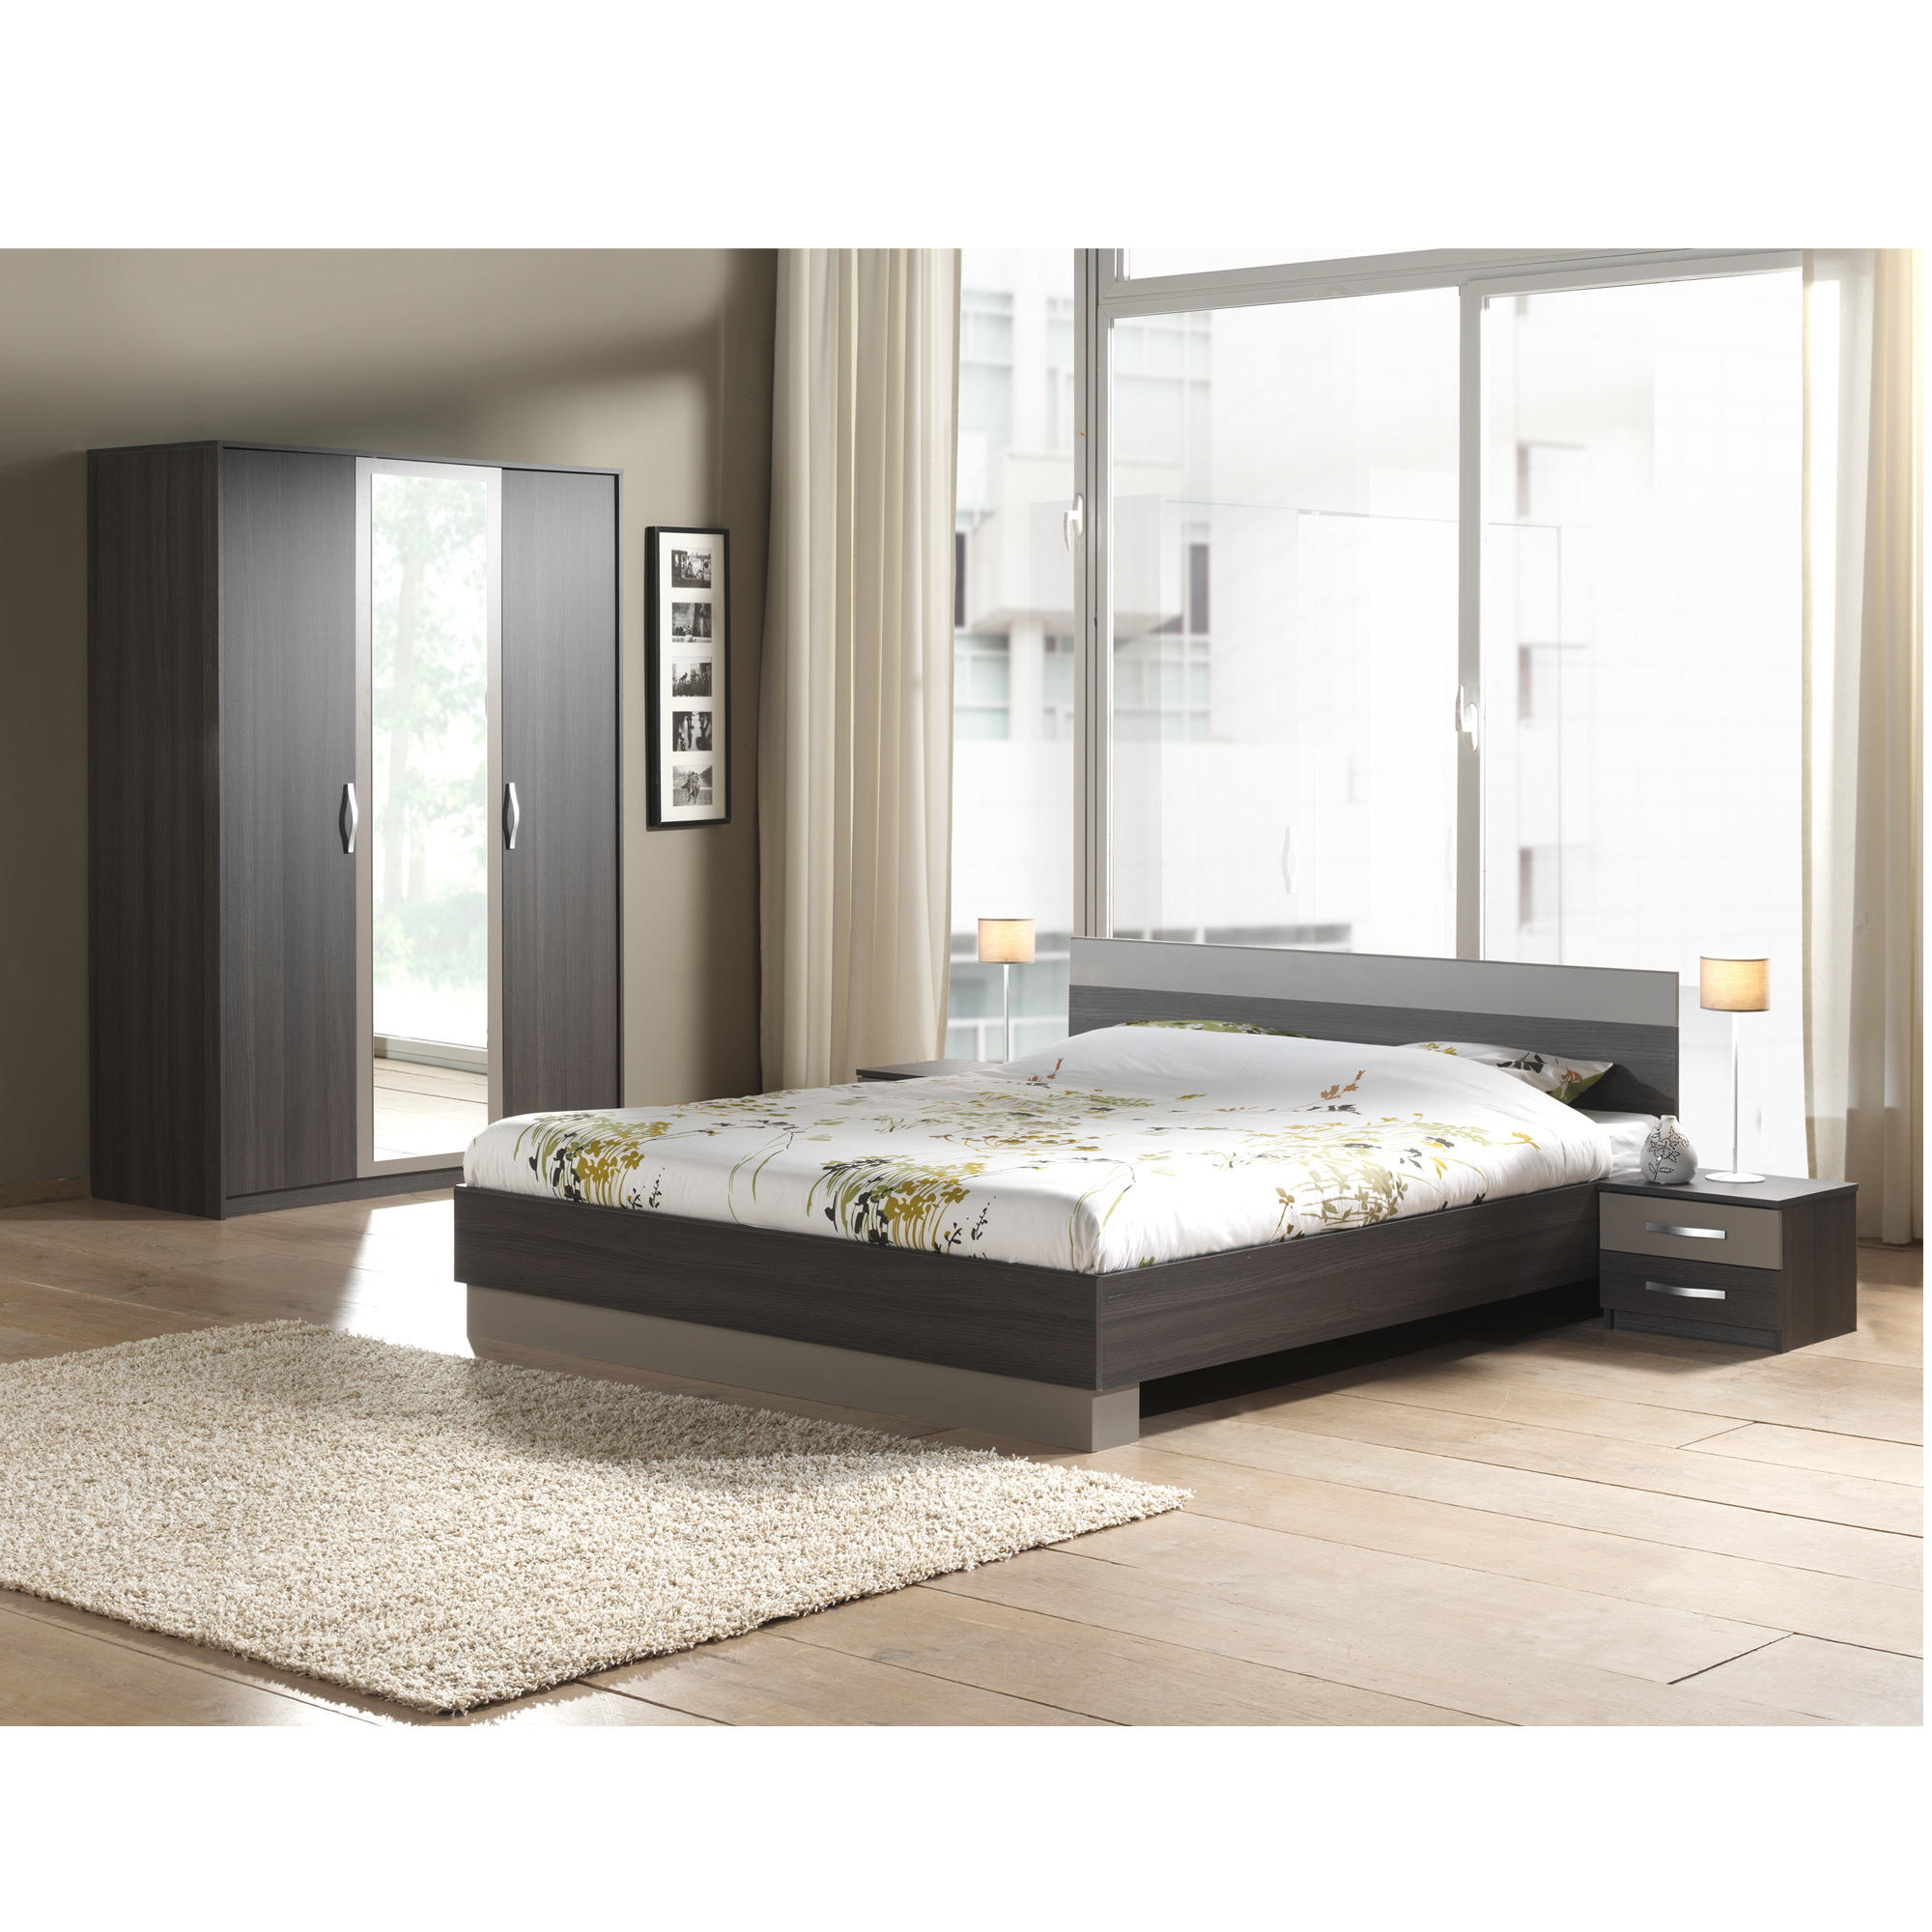 qu 39 est ce qu 39 un matelas queen size unigro. Black Bedroom Furniture Sets. Home Design Ideas